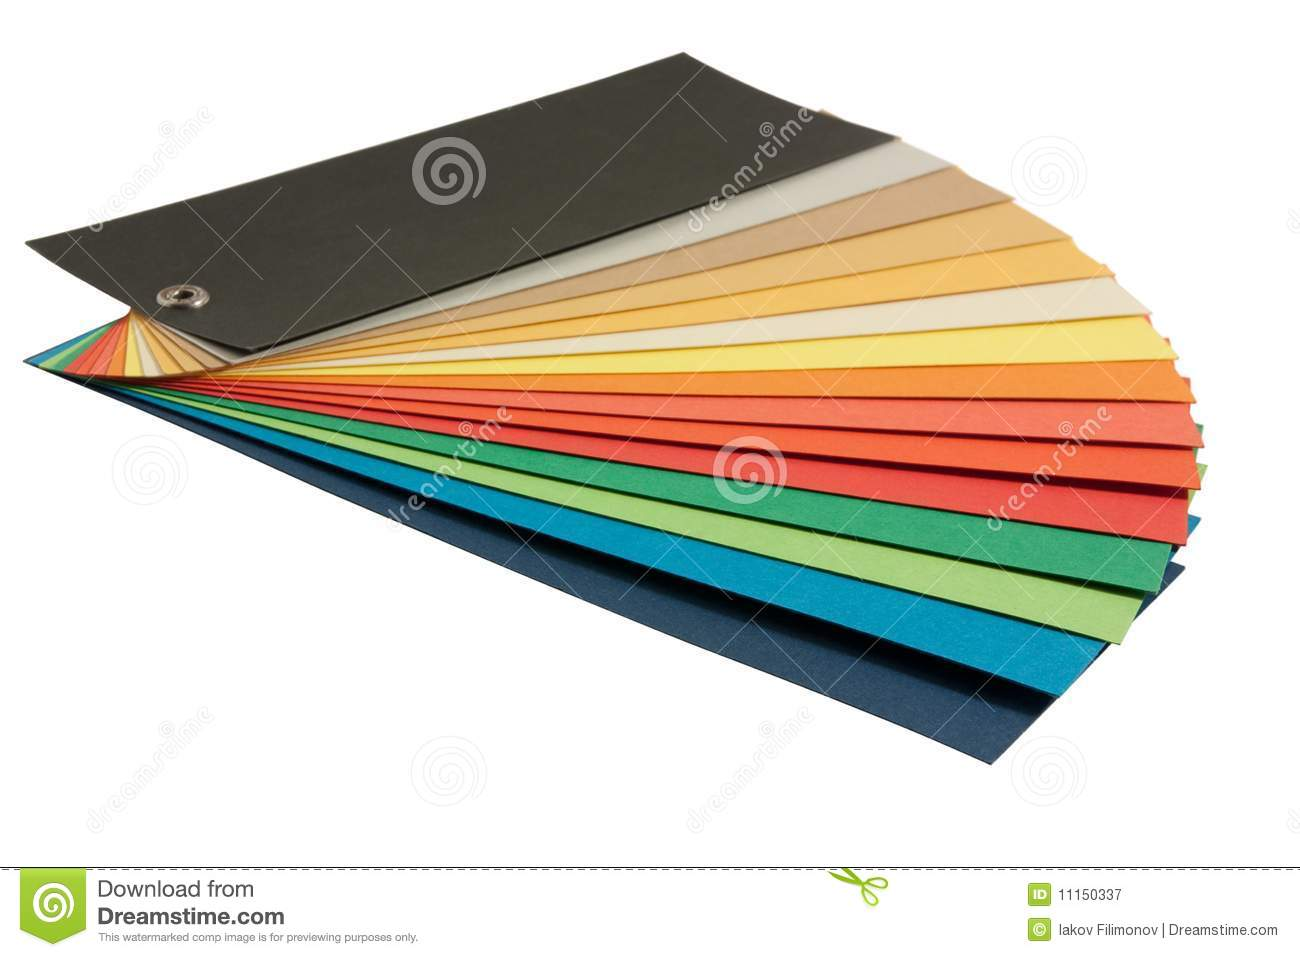 Pantone Color Scheme Stock Image Image Of Graphic Guide 11150337